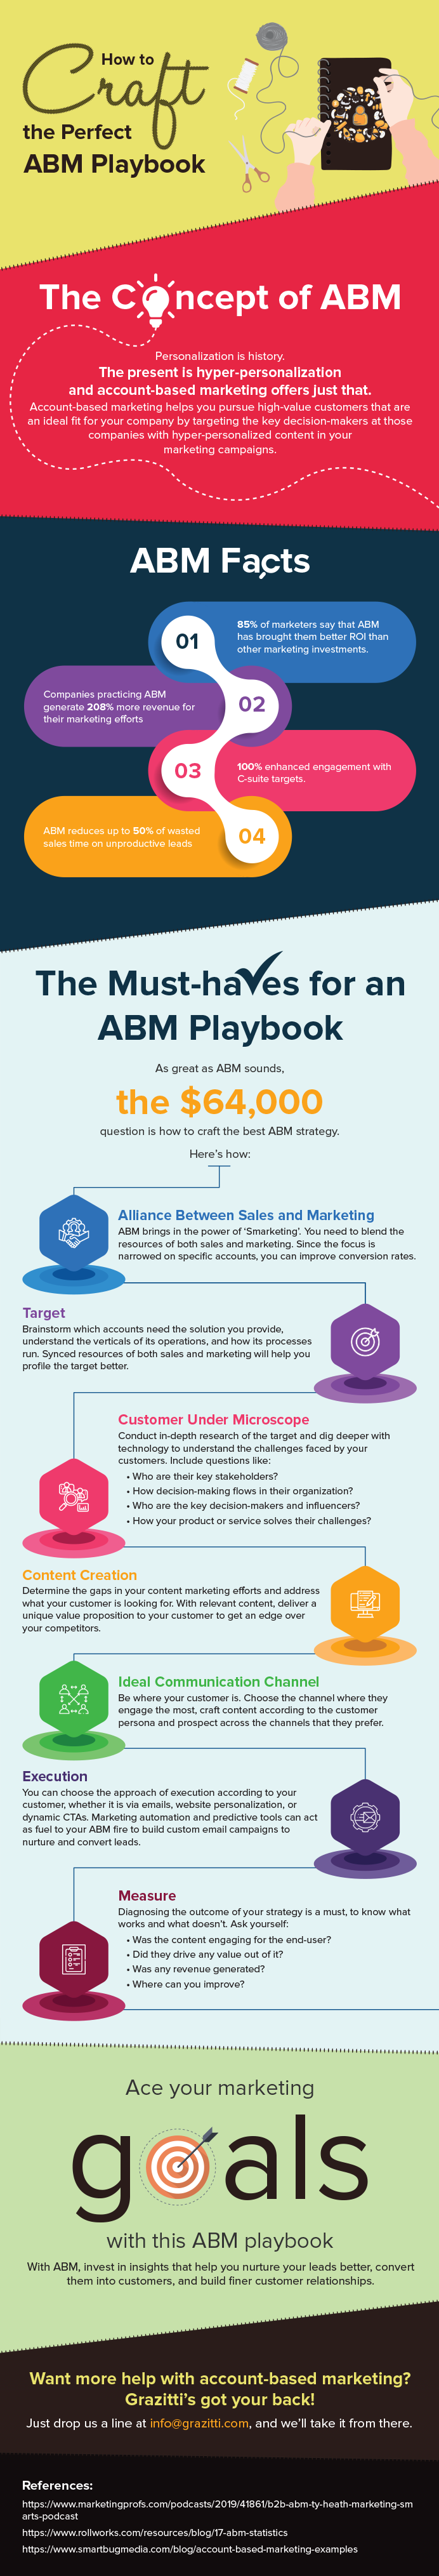 How to Craft the Perfect ABM Playbook #infographic